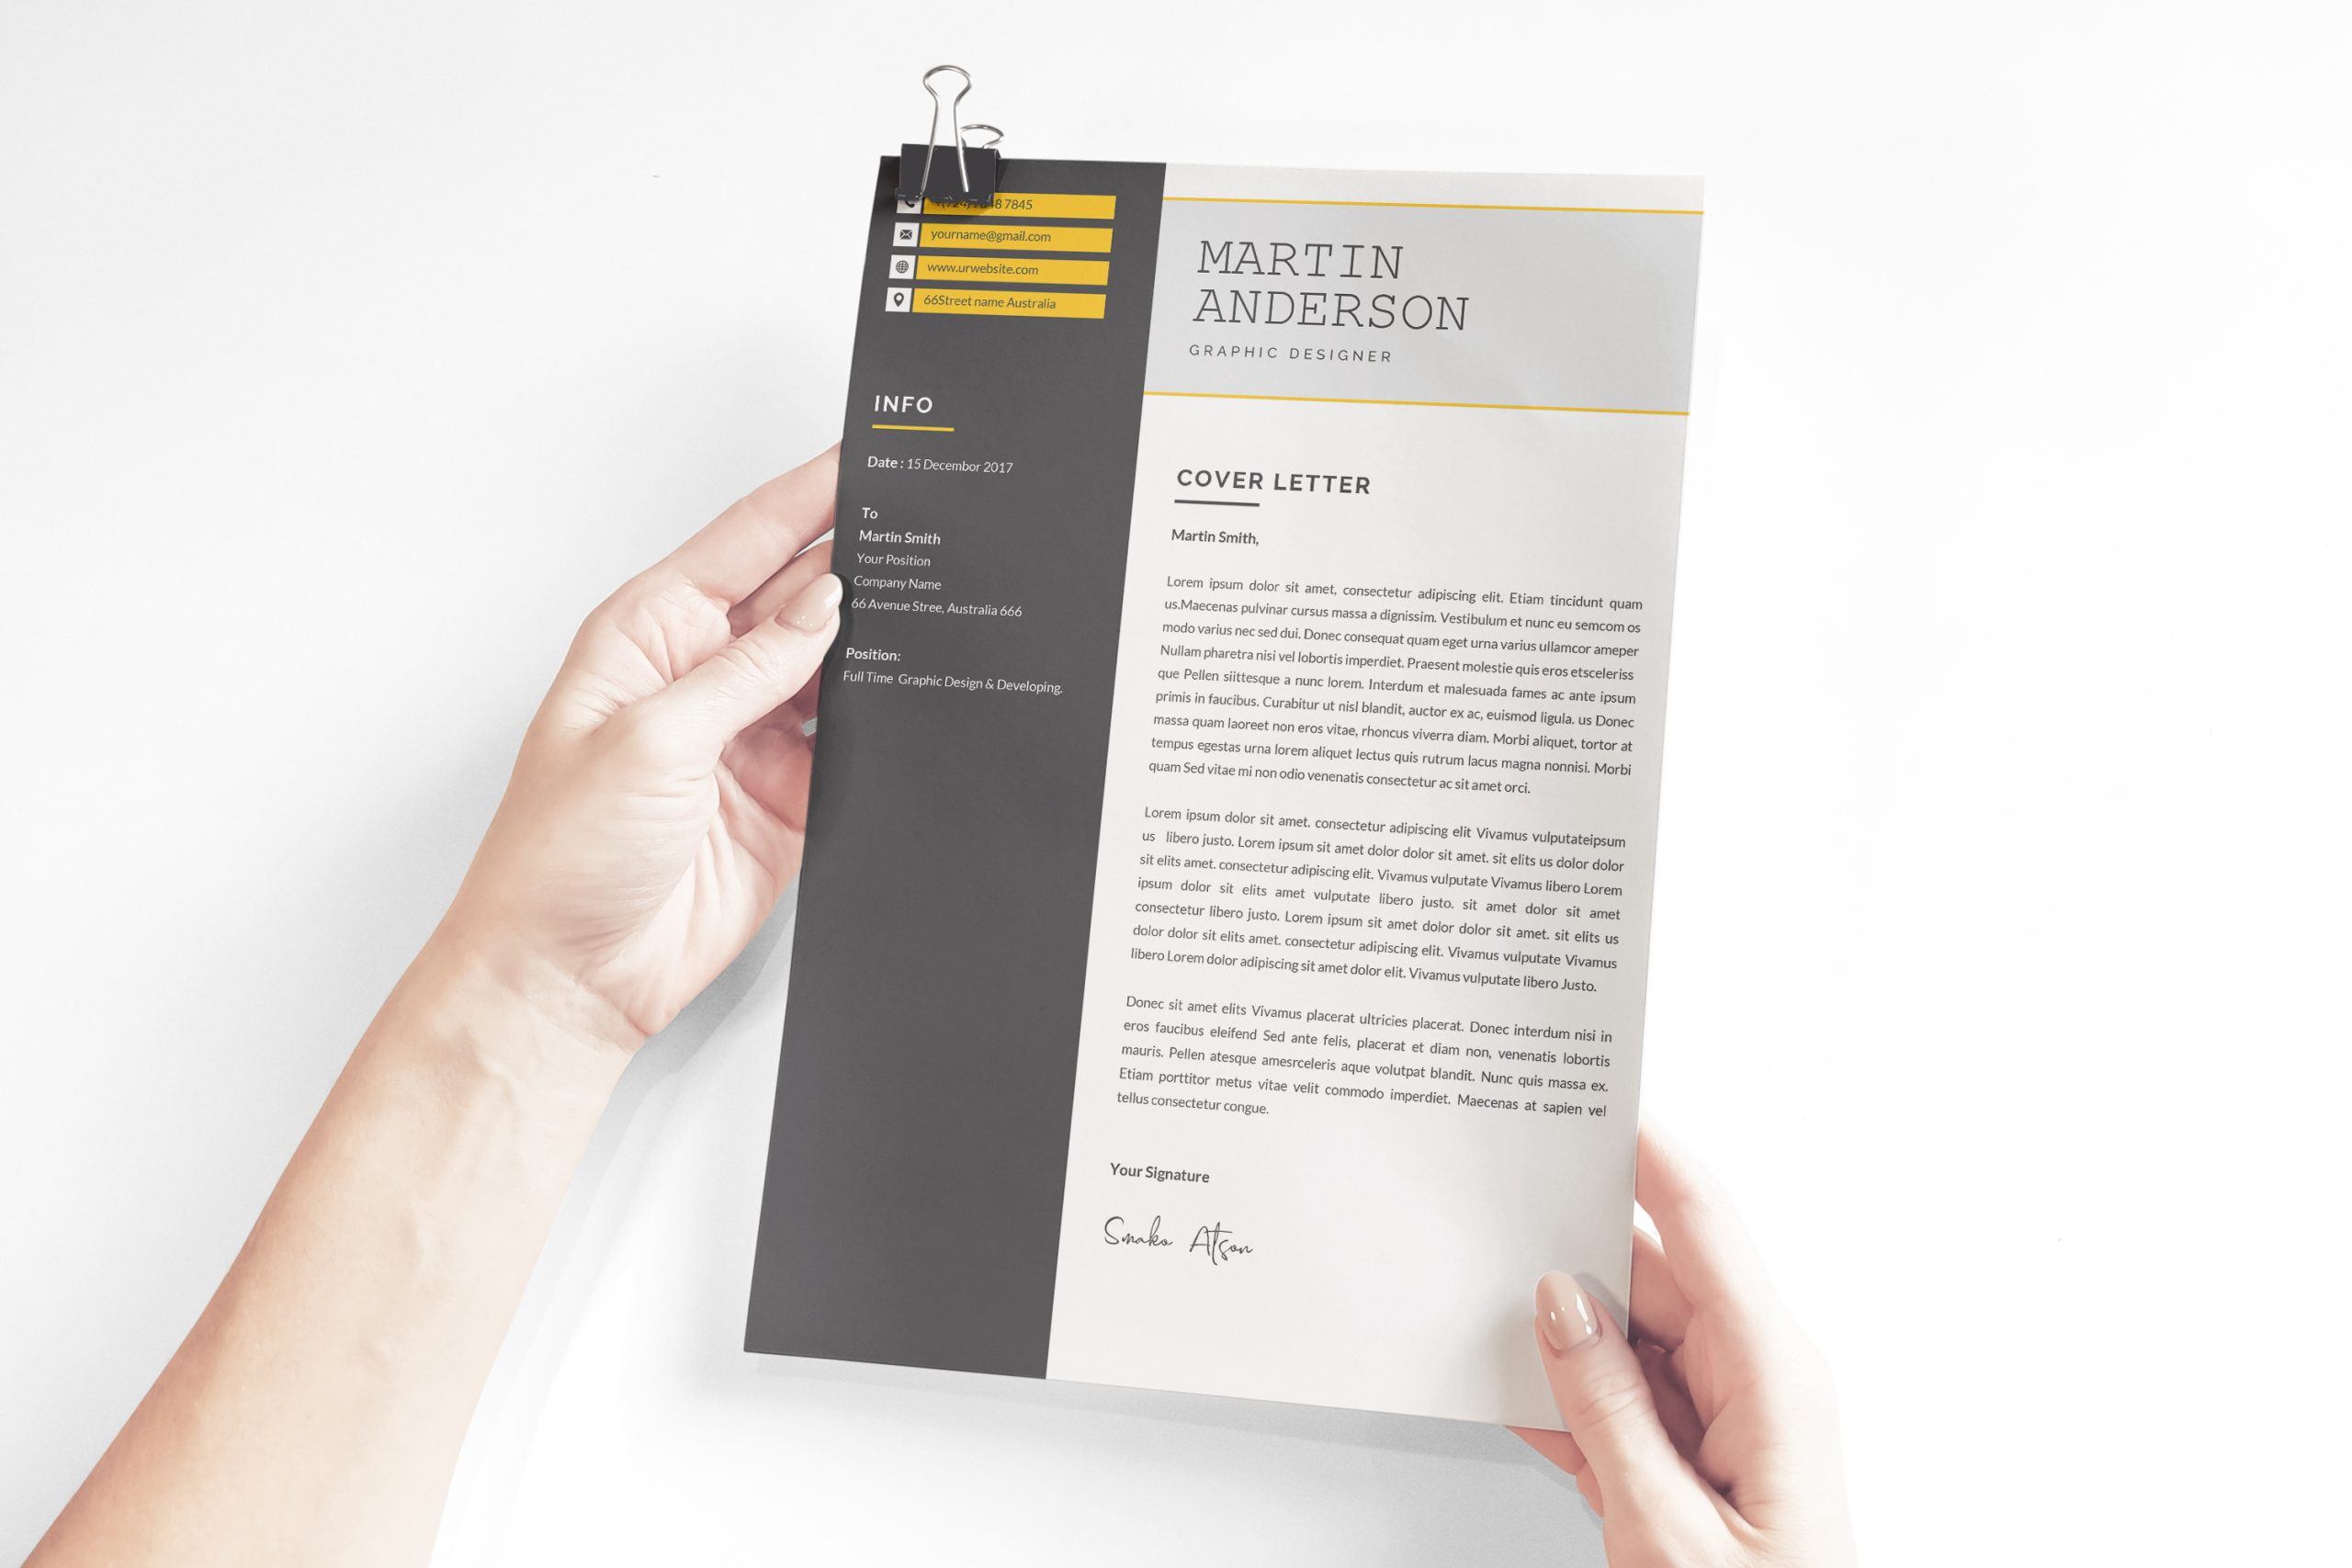 Interior Designer Cover Letter Template To Download In Word Format